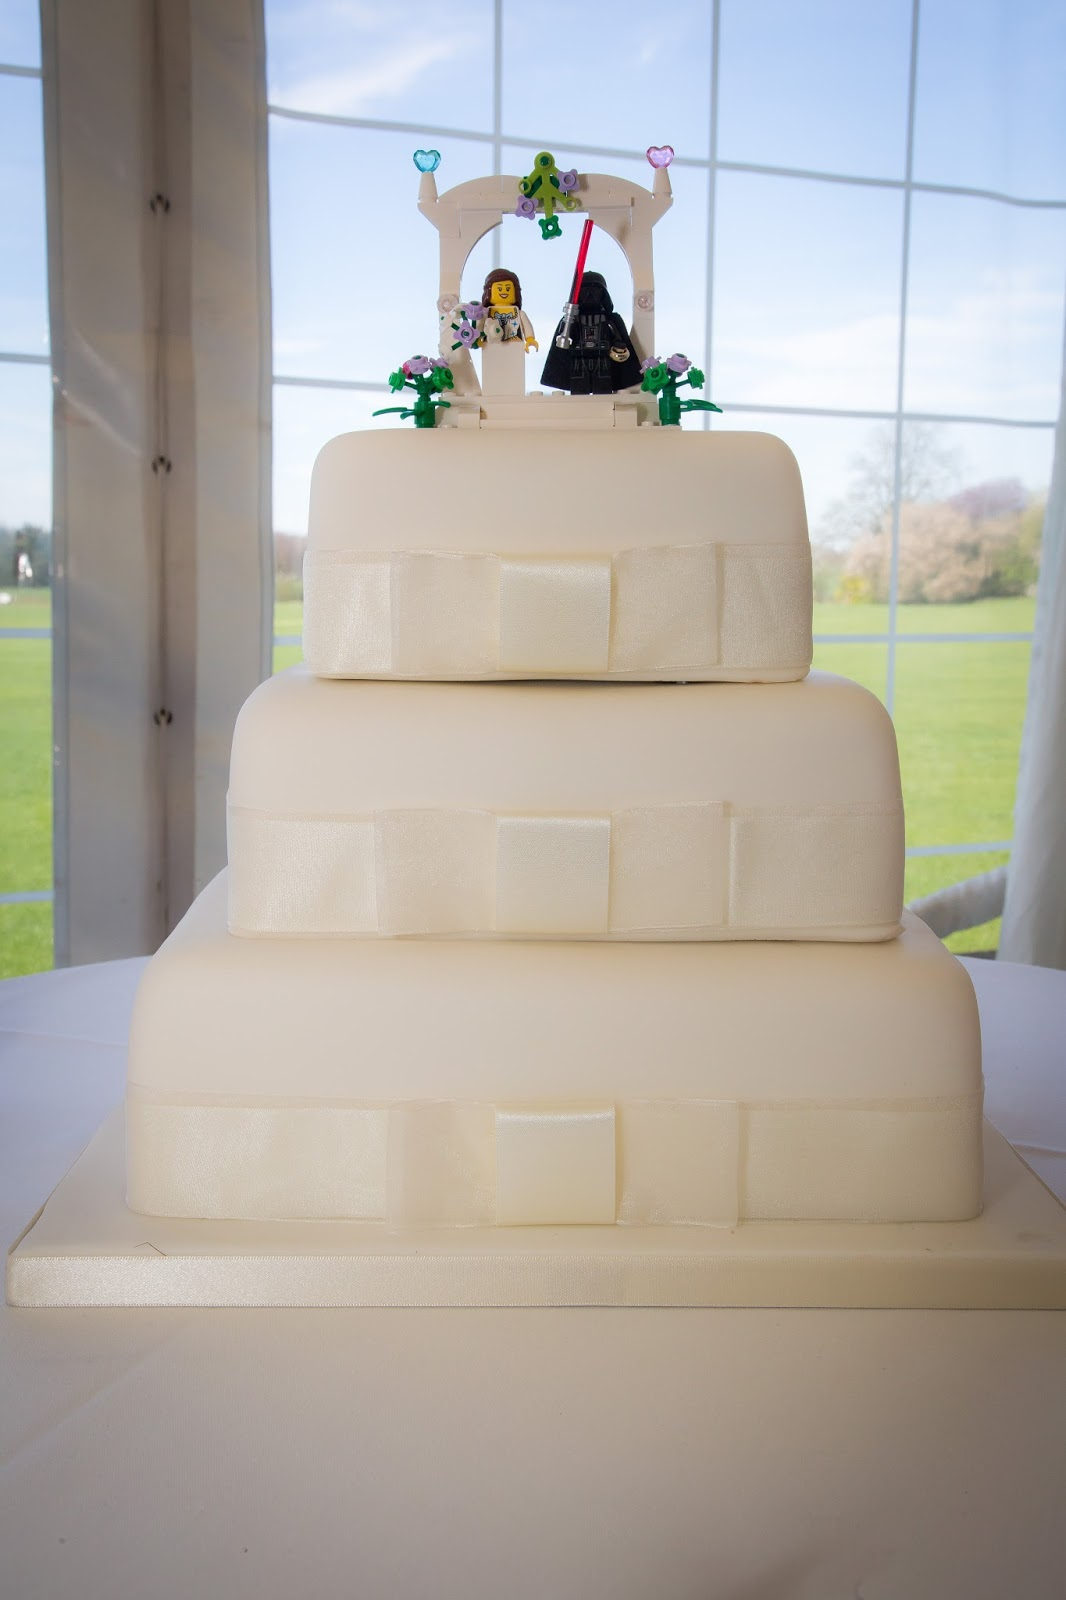 Lego wedding cake on a budget | Mummy Memories ❤